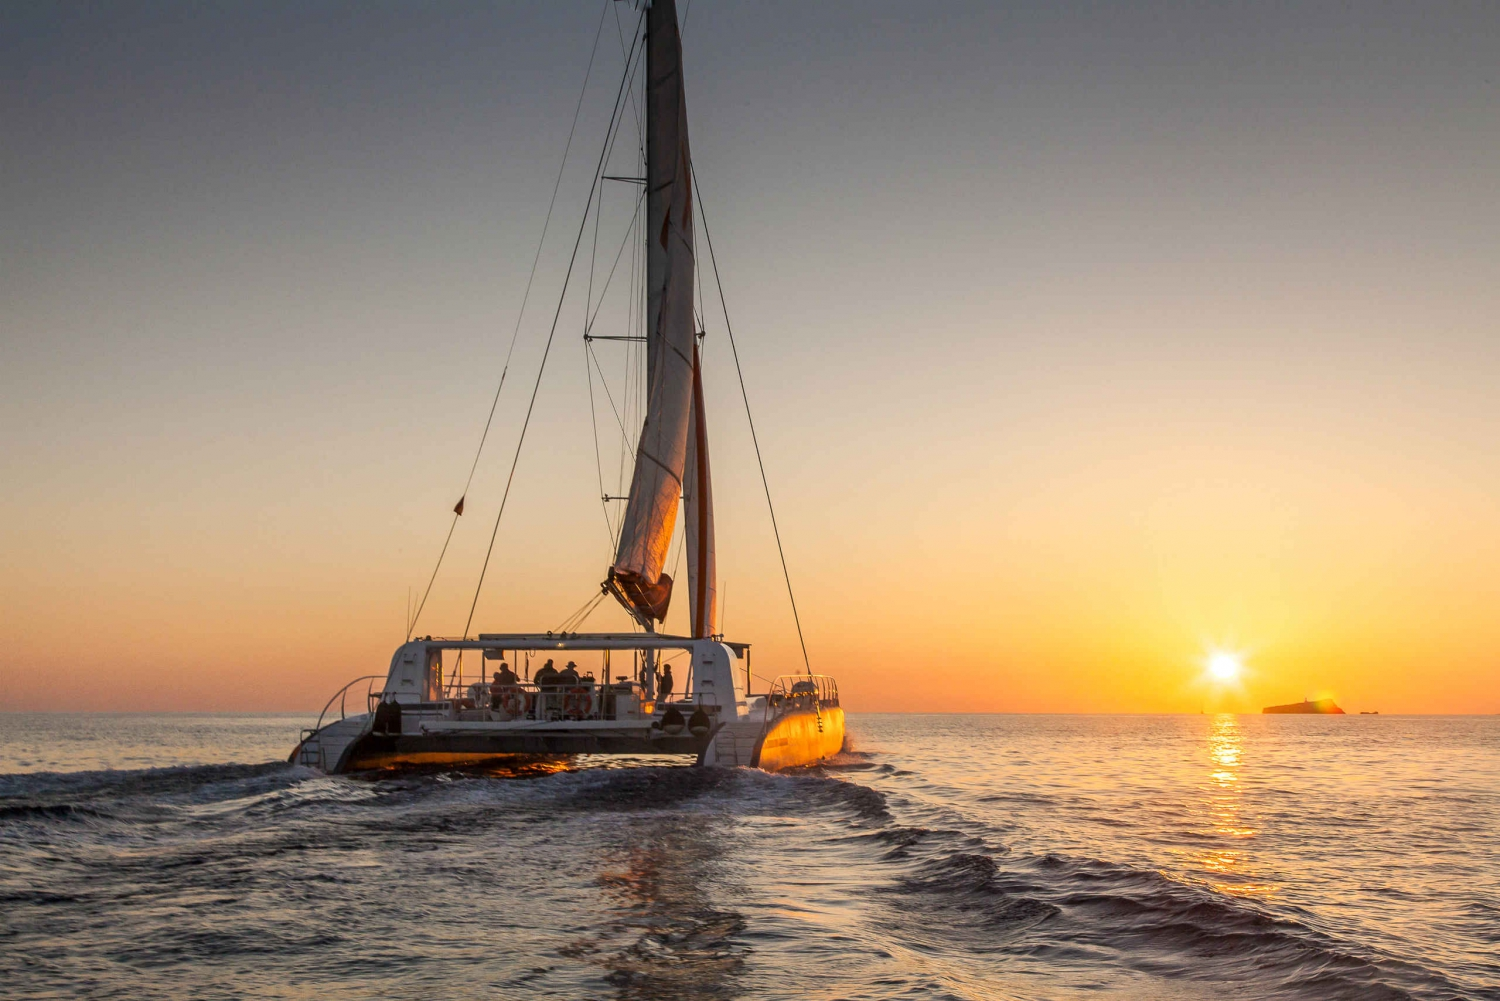 From Palma: Sunset Catamaran Excursion With Food and Drinks